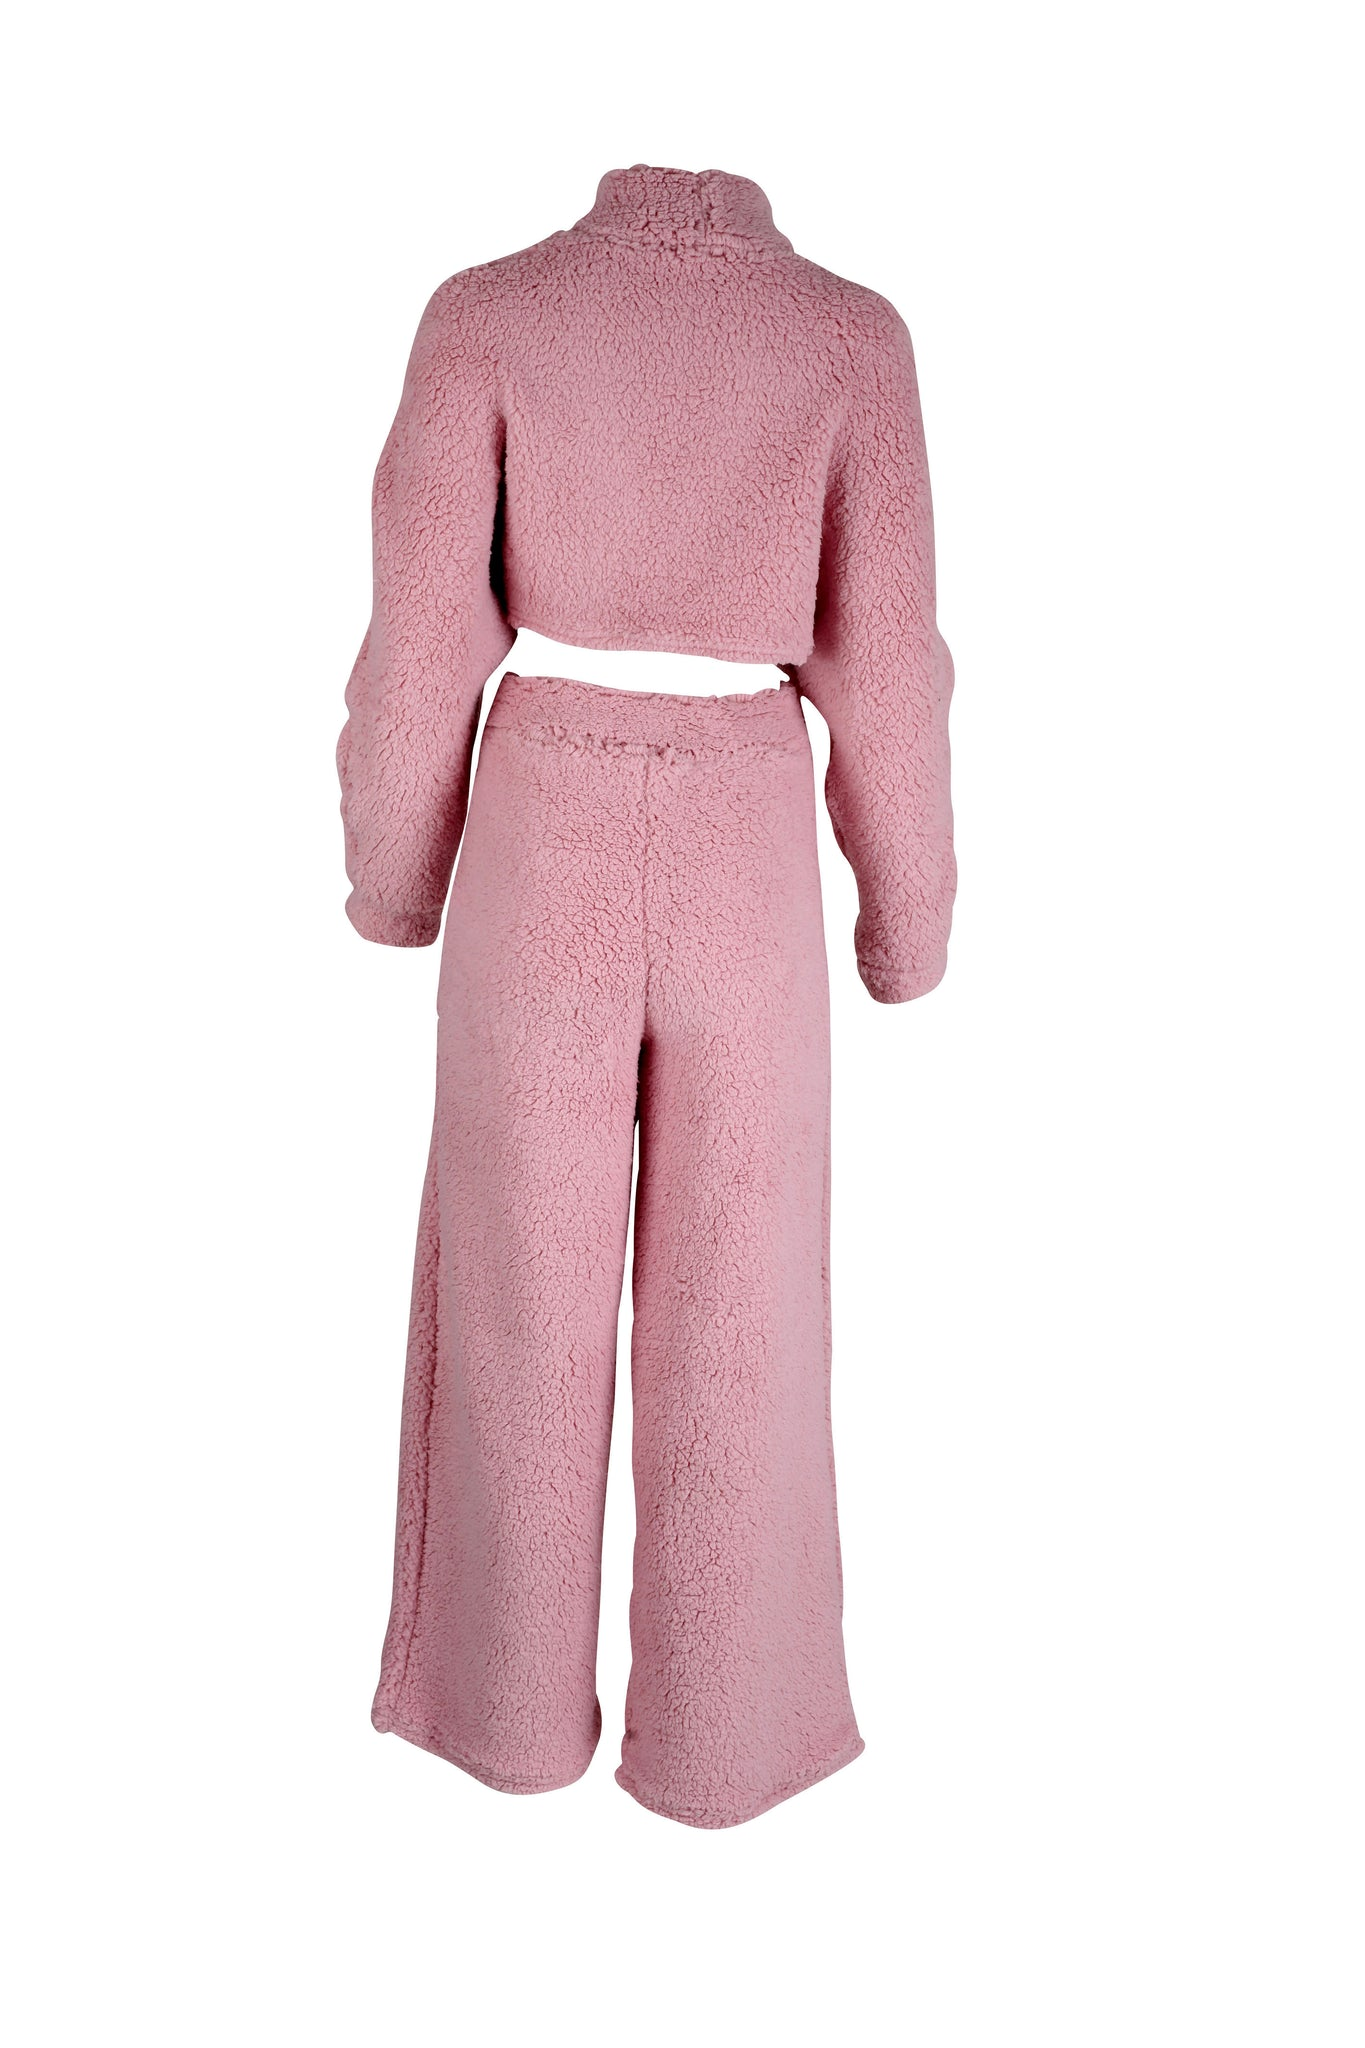 A ladies loungewear top and bottom set in a pink colour